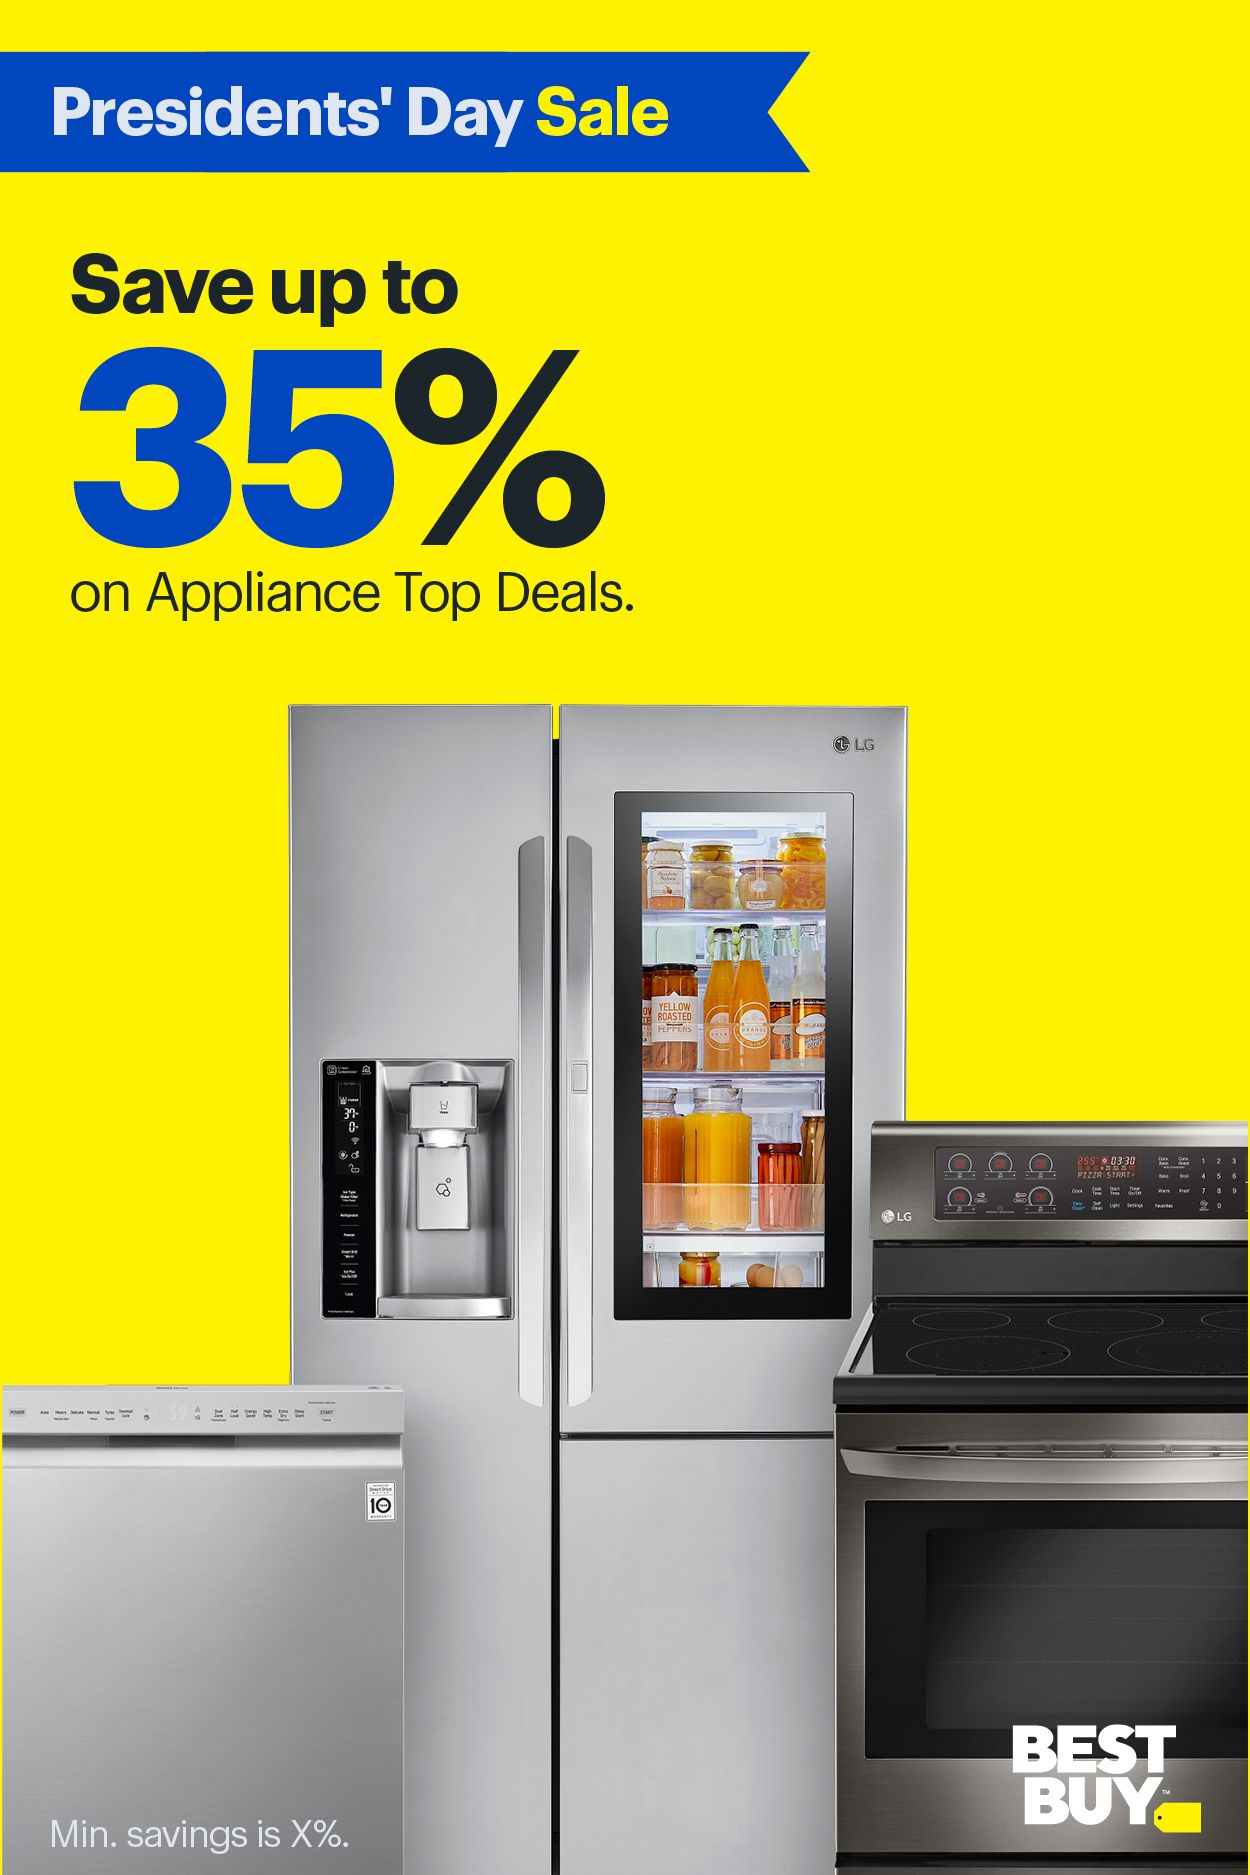 Save Big On These Popular Lg Kitchen Appliances The Lg Side By Side Instaview Smart Refrigera Keto Diet Side Effects Keto Diet Food List Low Carbohydrate Diet